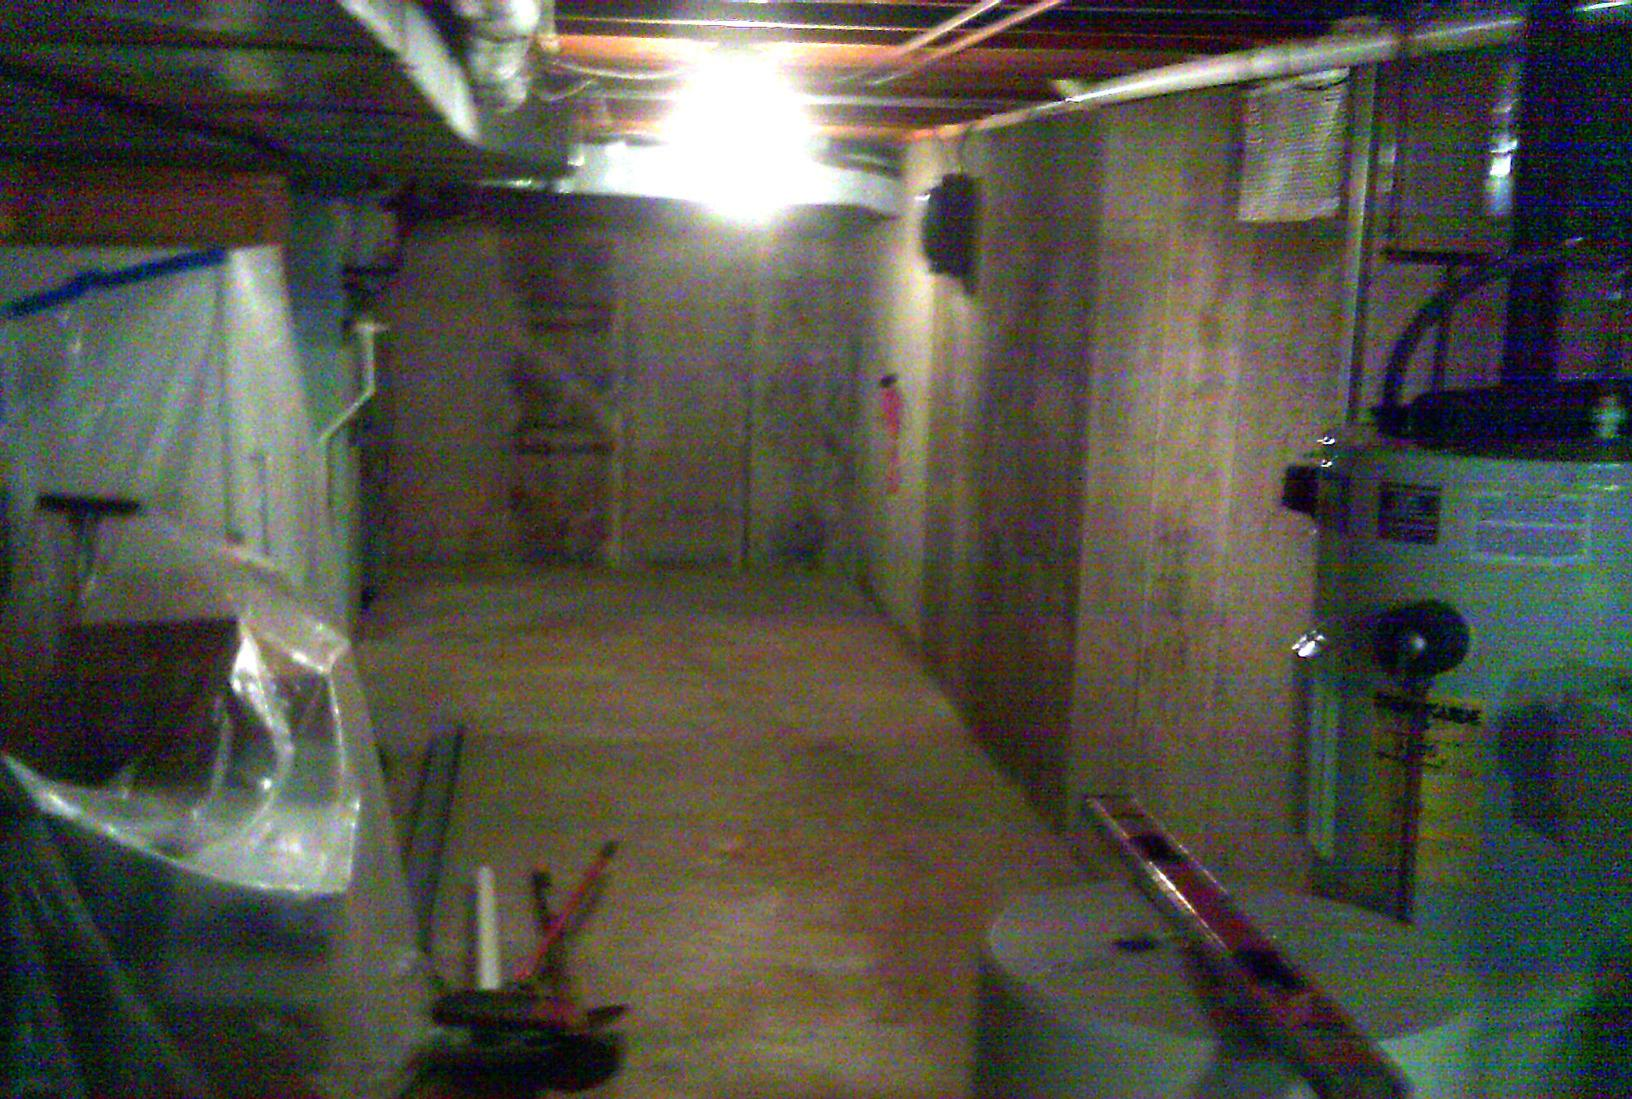 The basement was consistently damp and unpleasant.